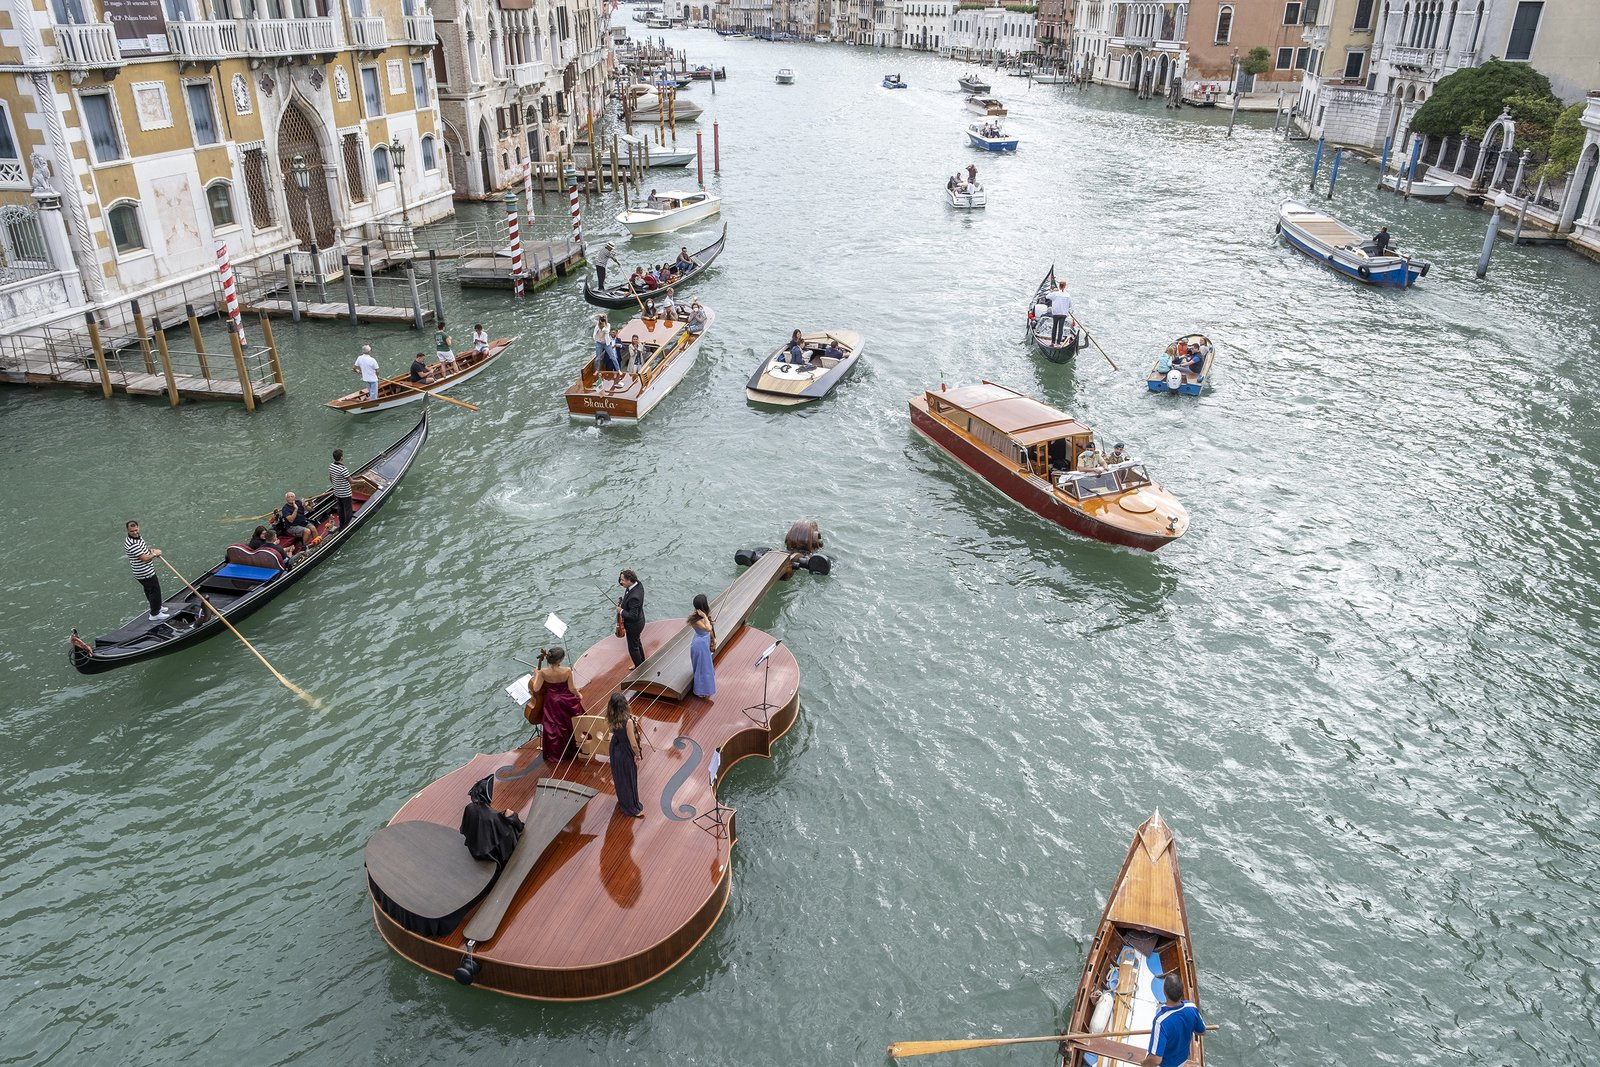 Why a String Quartet Set Sail on a Giant Violin in Venice's Grand Canal